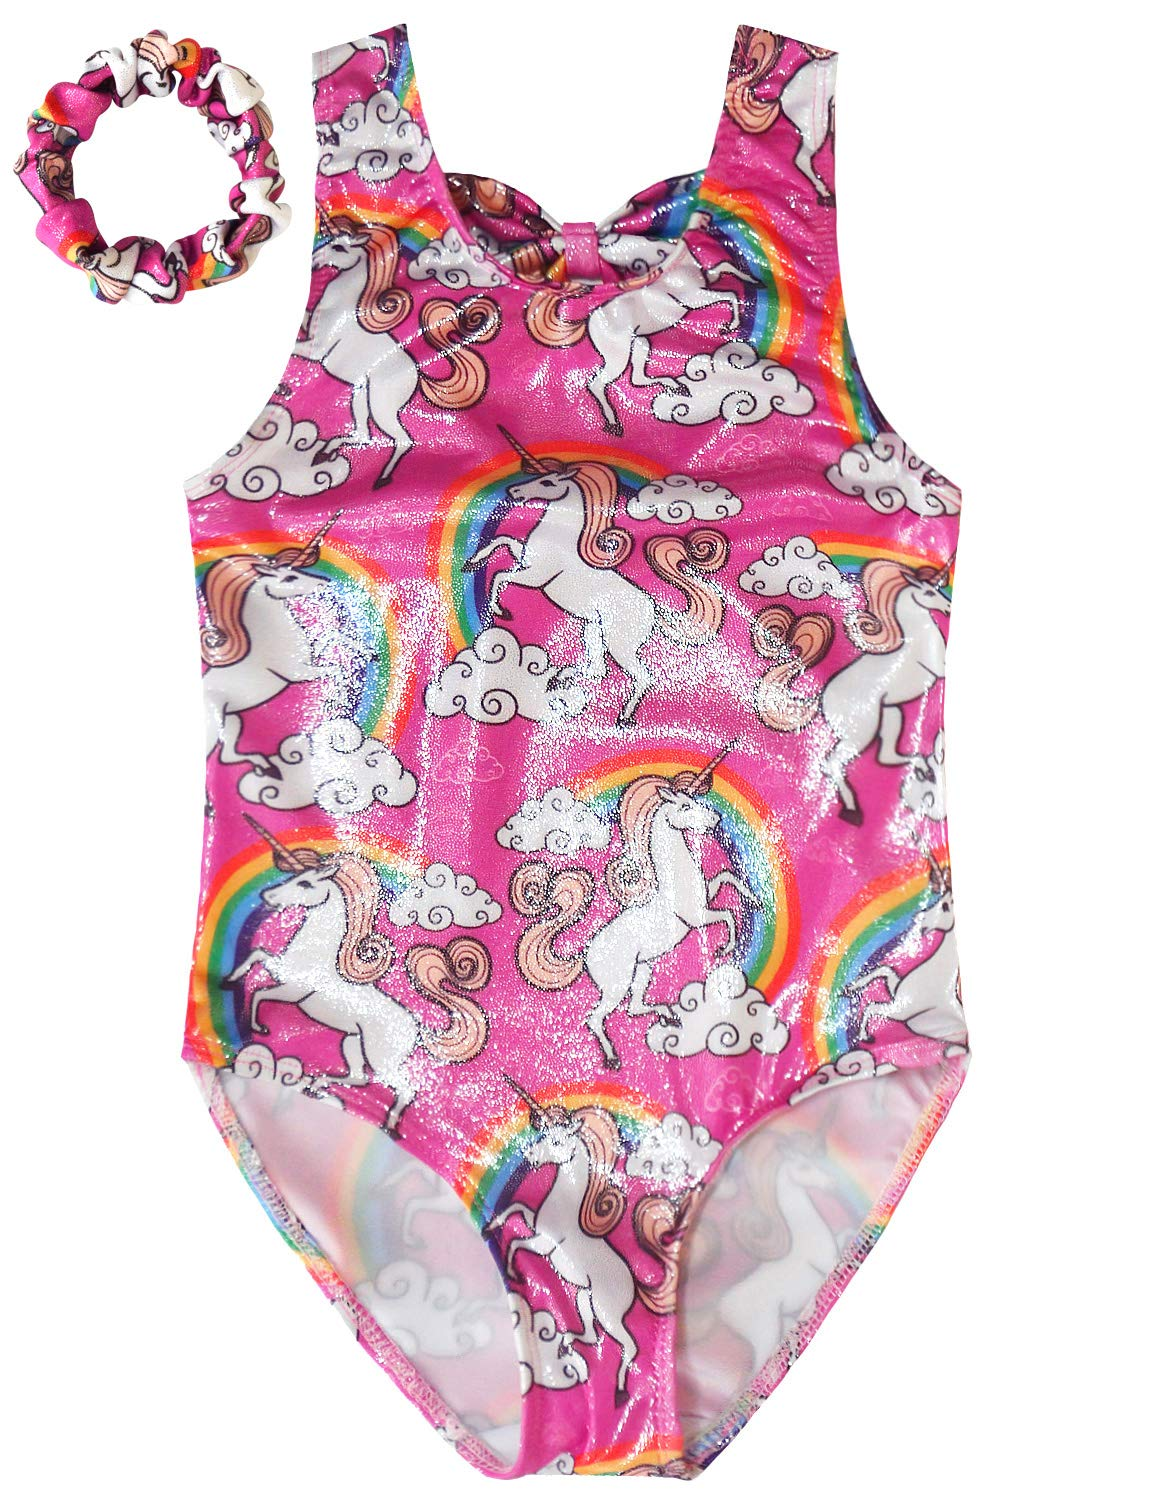 Gymnastics Leotards for Girls Sparkly Unicorn Outfits Activewear Quick Dry 3